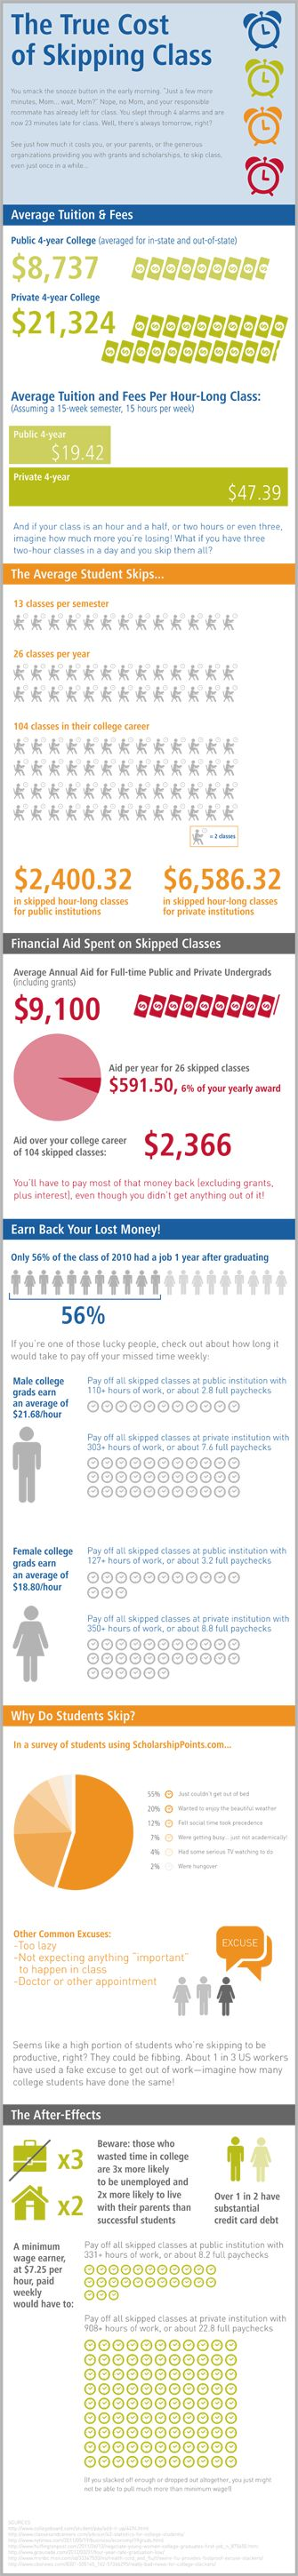 The True Cost of Skipping Class [Infographic] #highered